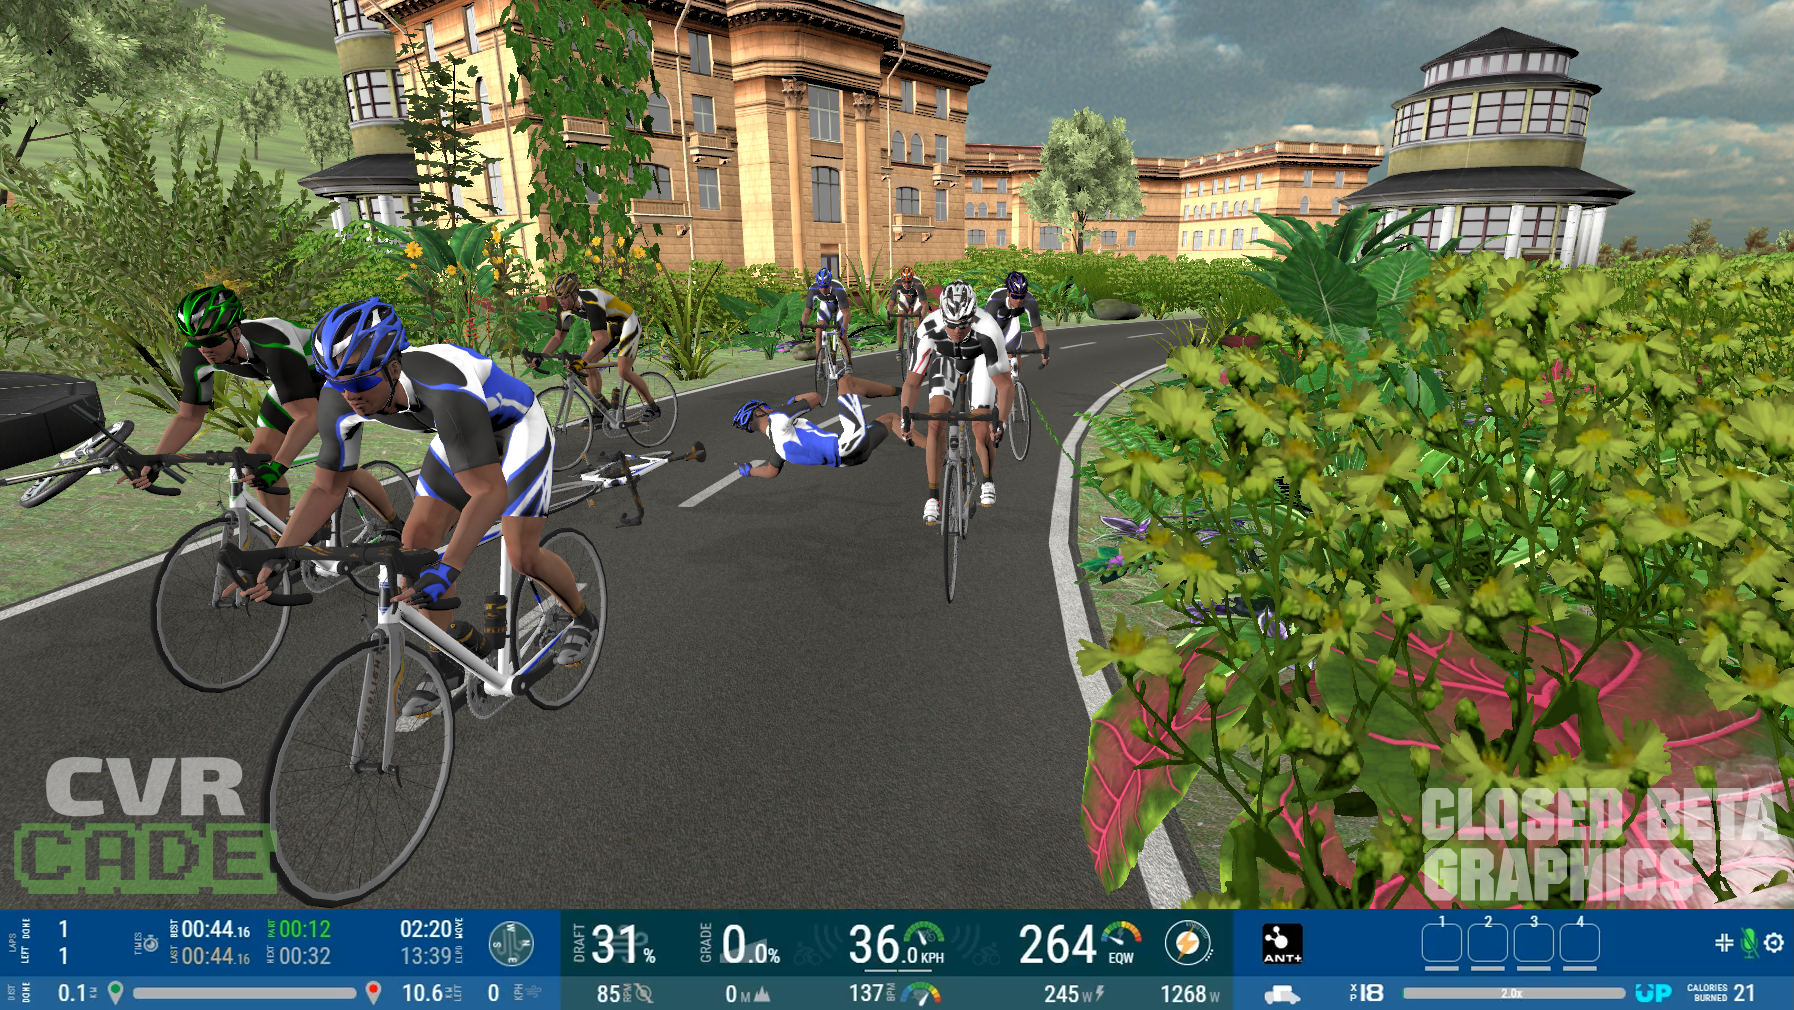 CVRcade Bike Gaming Platform to Compete With Zwift | Indoor